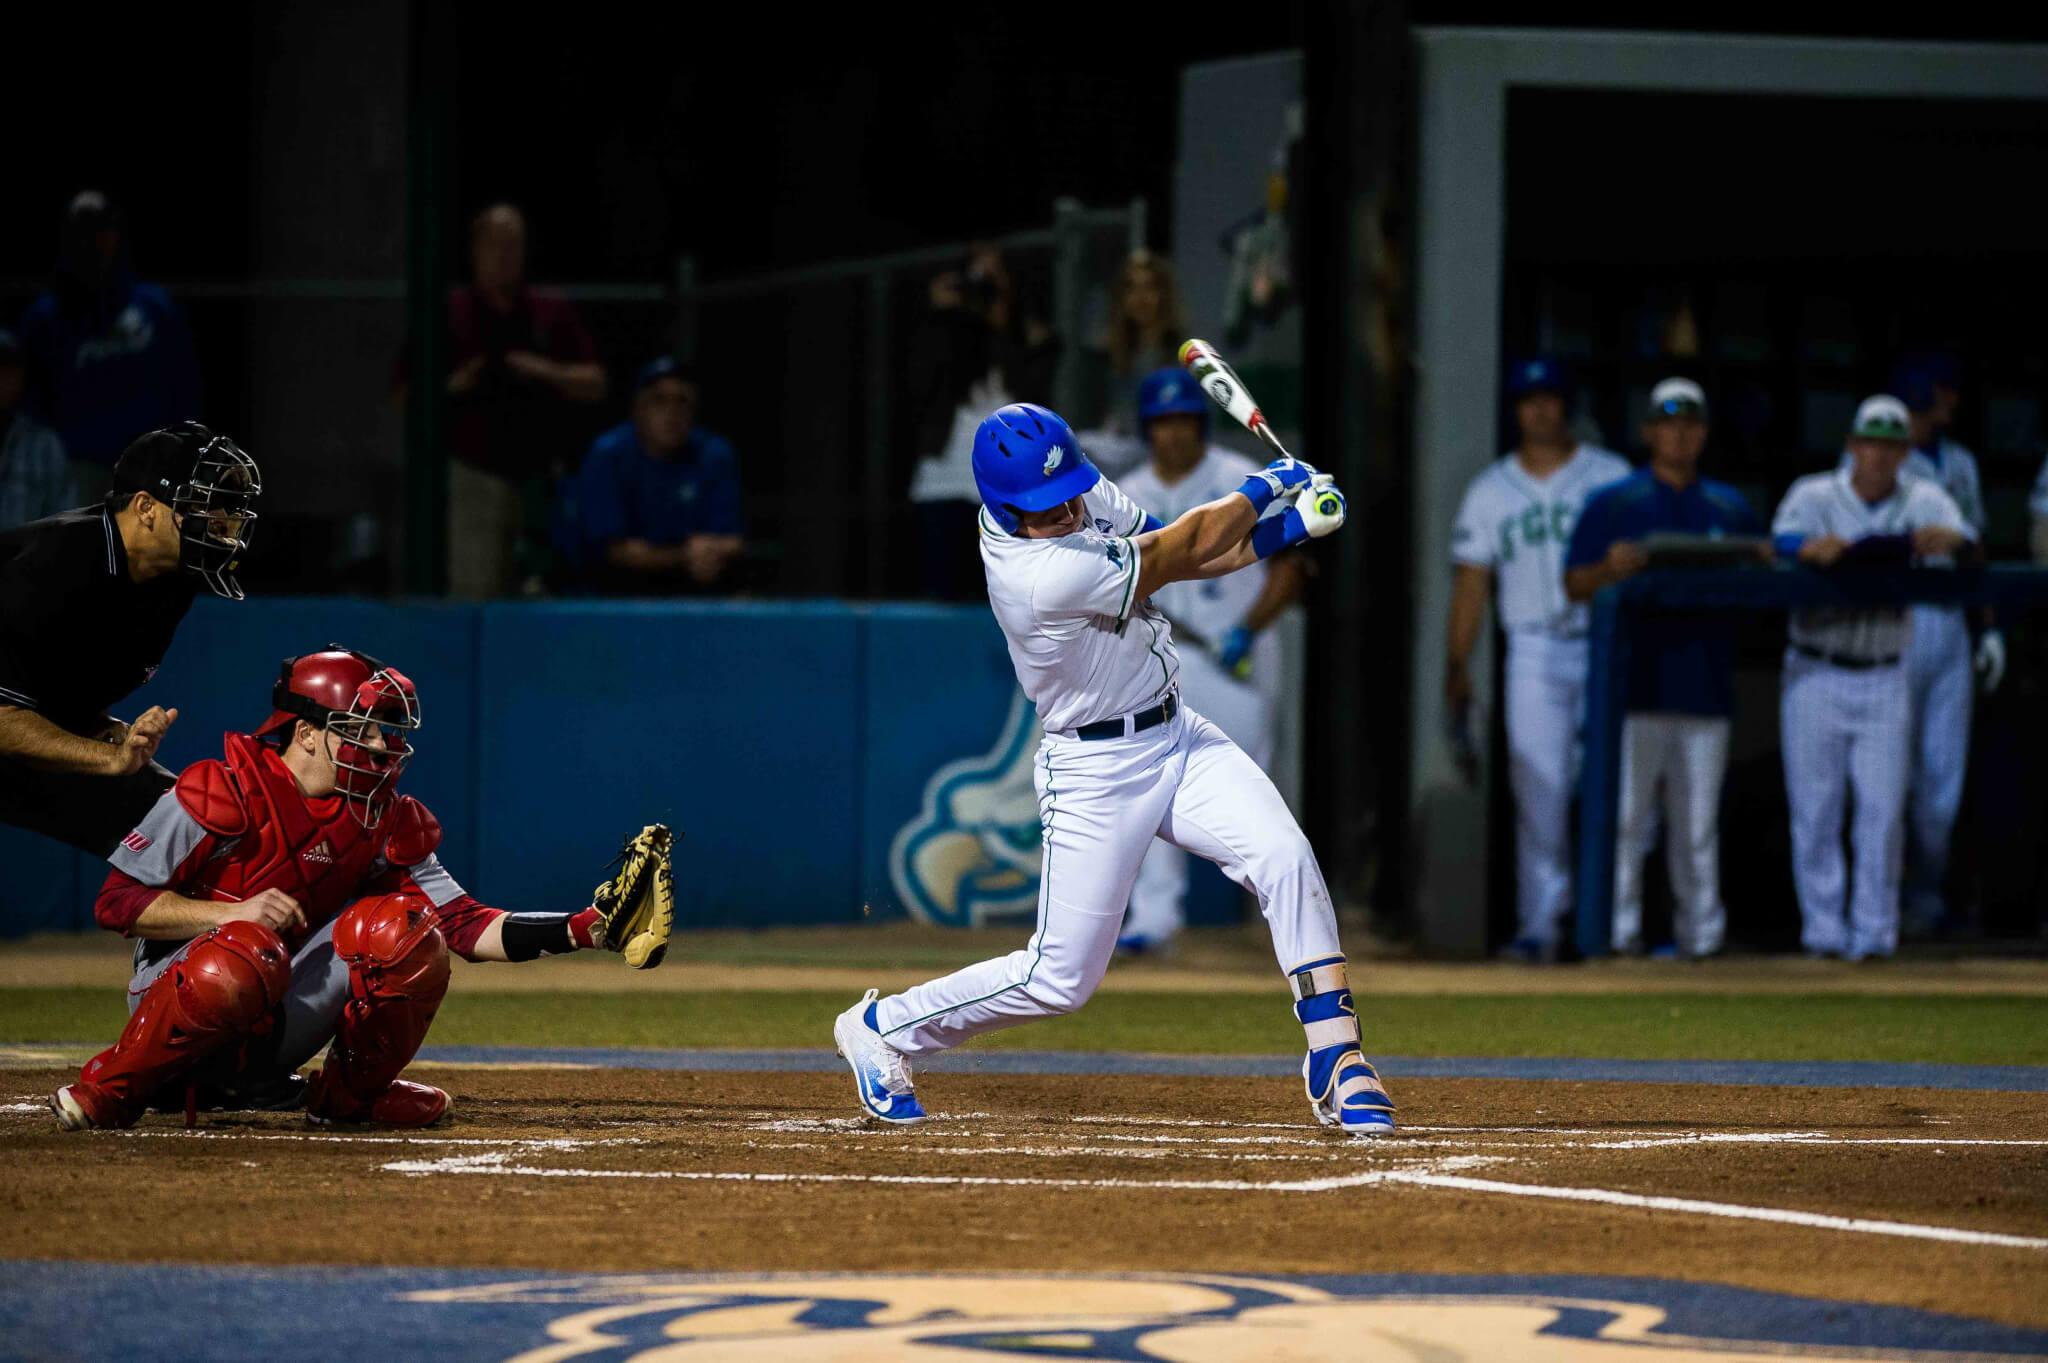 FGCU baseball opens up campaign with loss to Sacred Heart